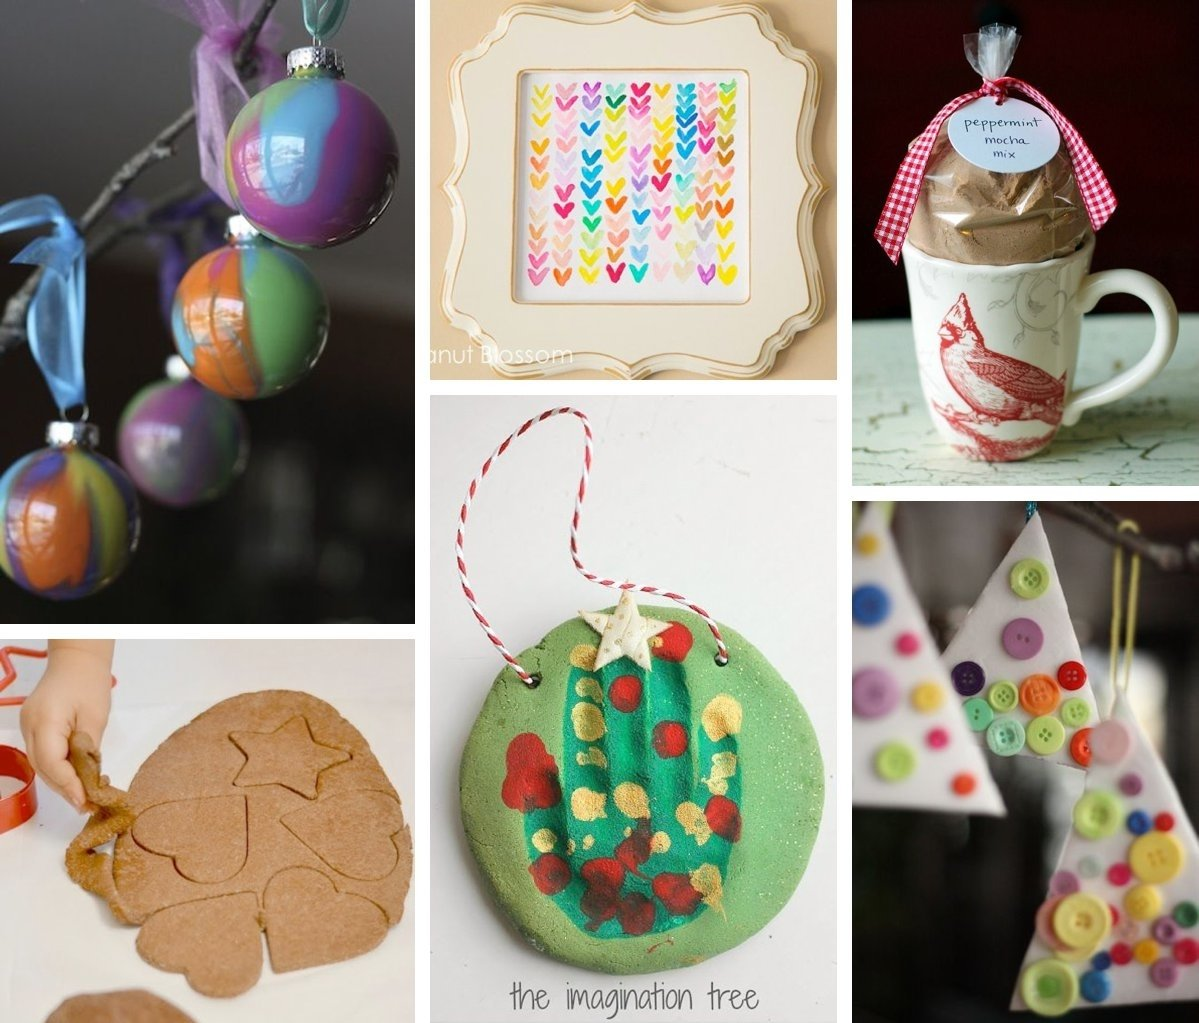 10 Stunning Christmas Gift Ideas For Kids To Make diy holiday gifts kids can help make 1 2020